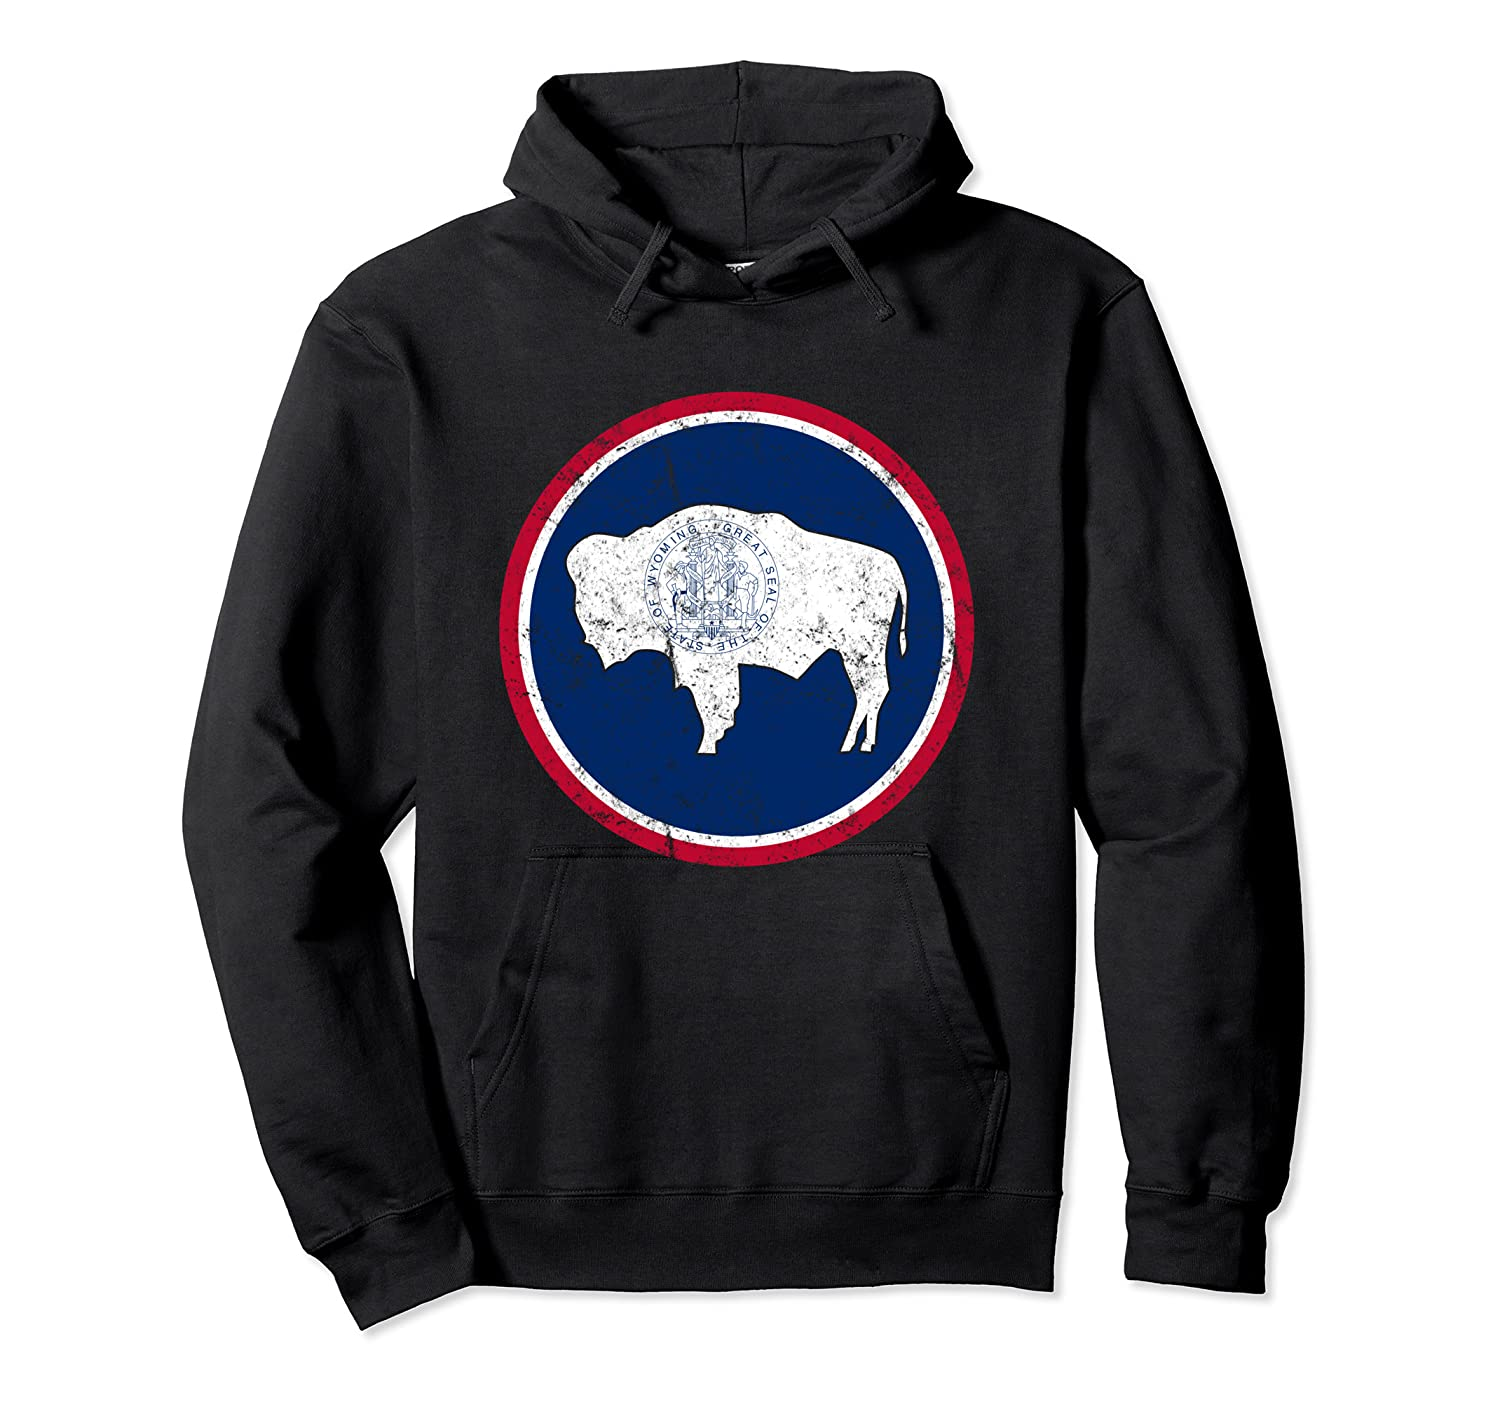 Wing State Flag Patriotic Shirts Unisex Pullover Hoodie